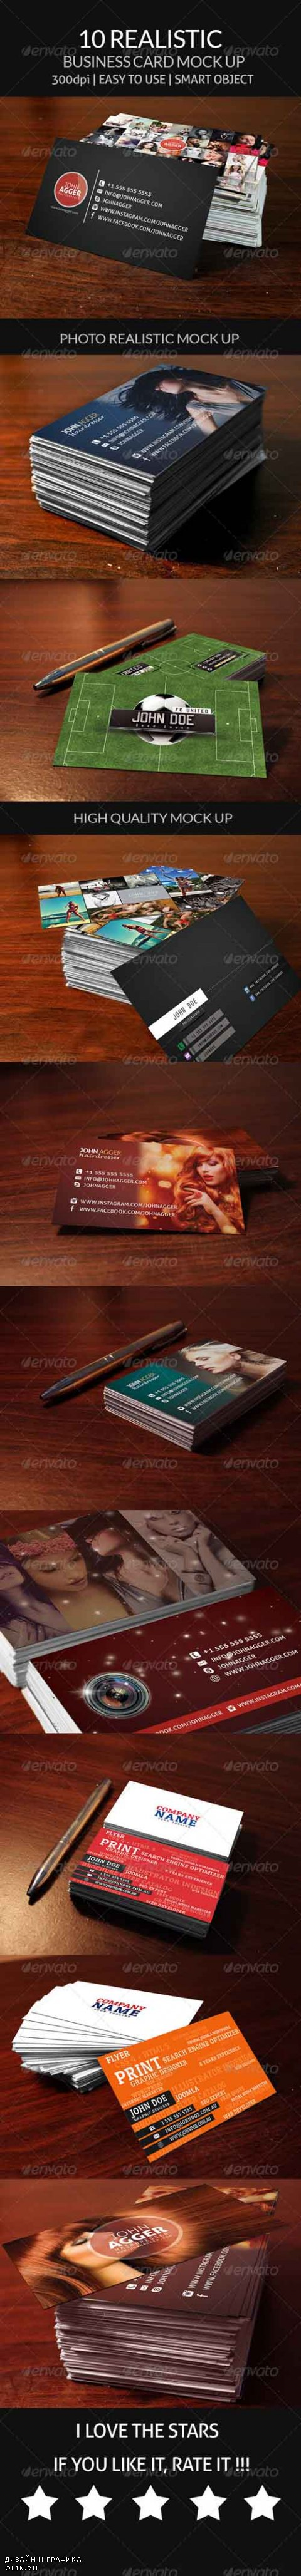 10 Realistic Business Card Mock Up 8043746